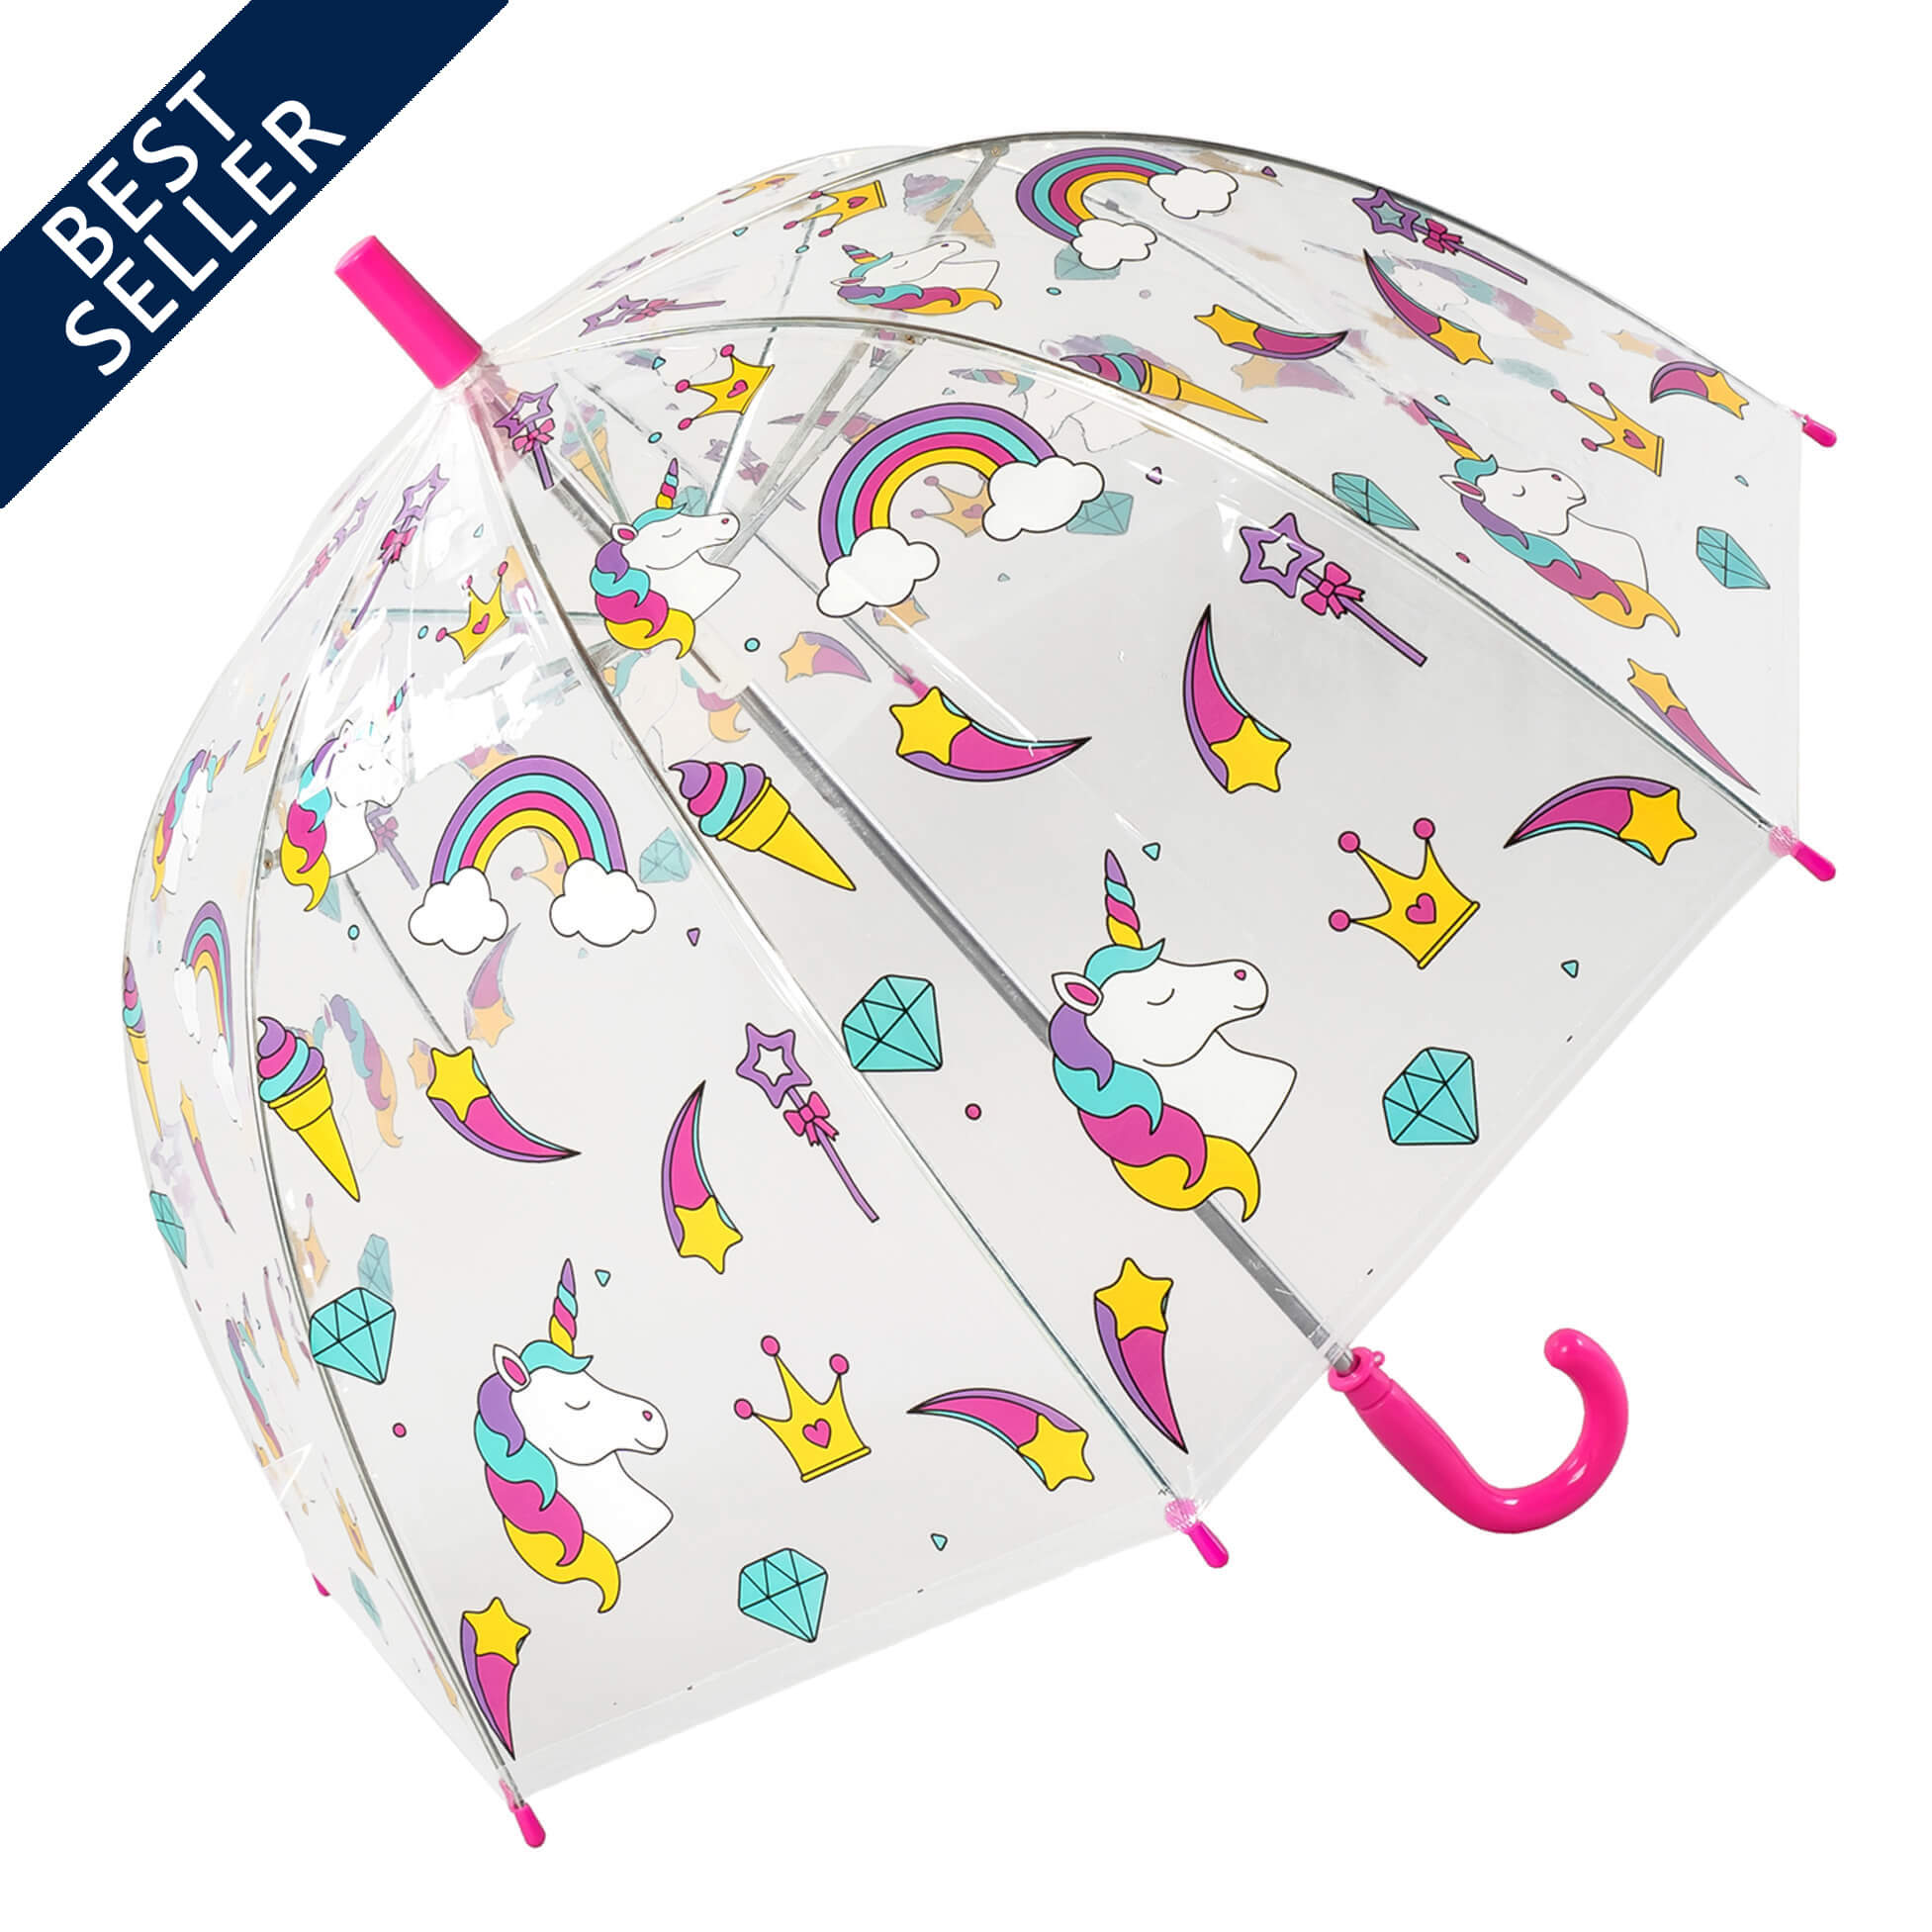 Colourful Childrens Unicorn Clear Bubble Dome Umbrella (17024)